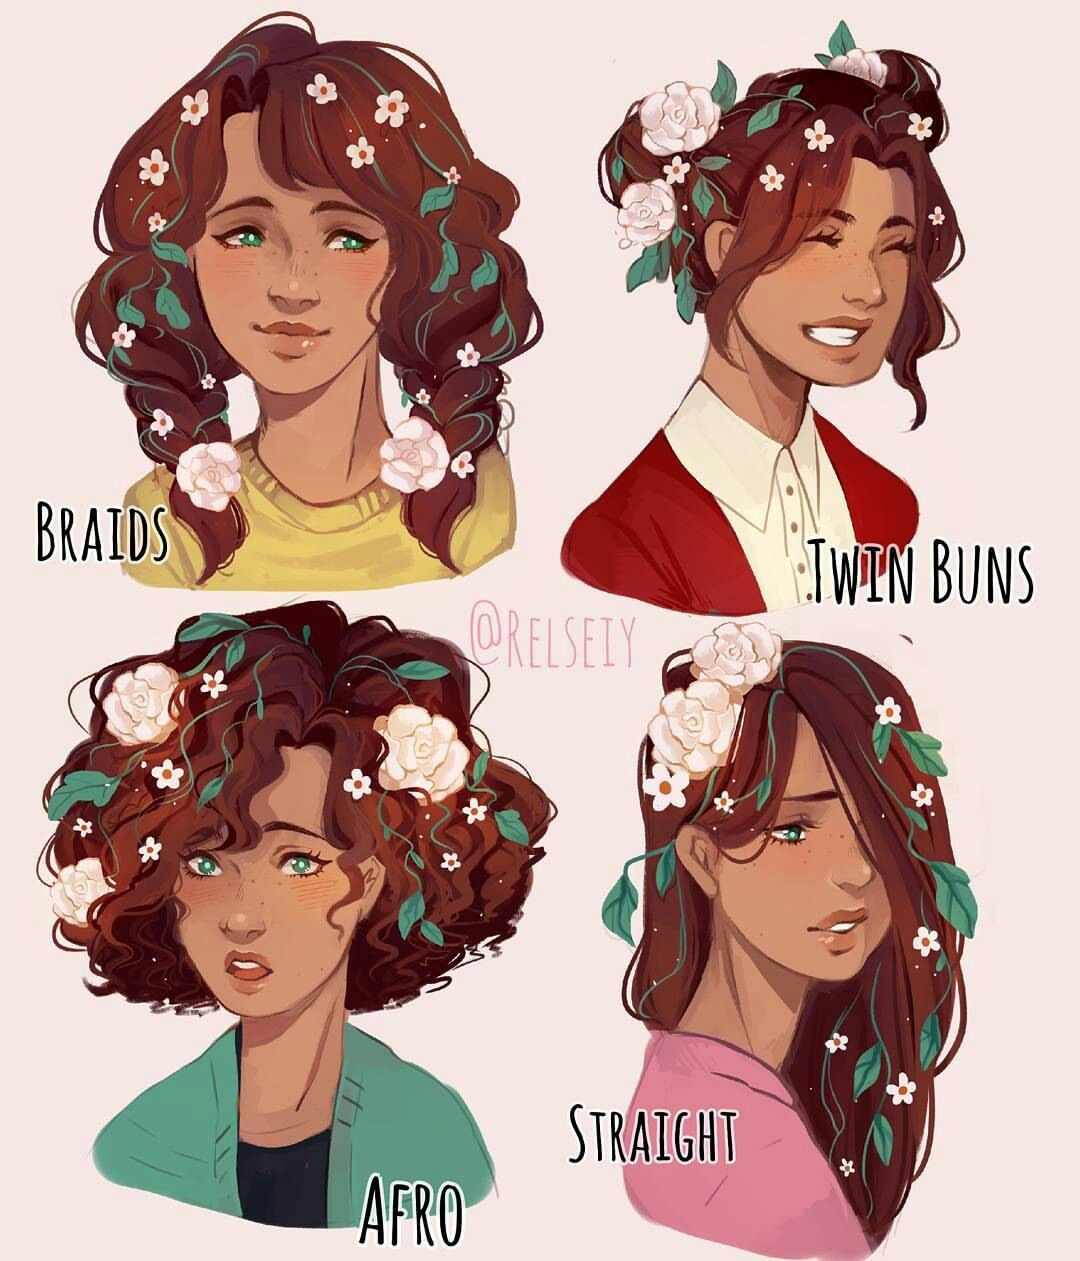 Pin By Vitalina On Dizajn Personazhej Art How To Draw Hair Drawings